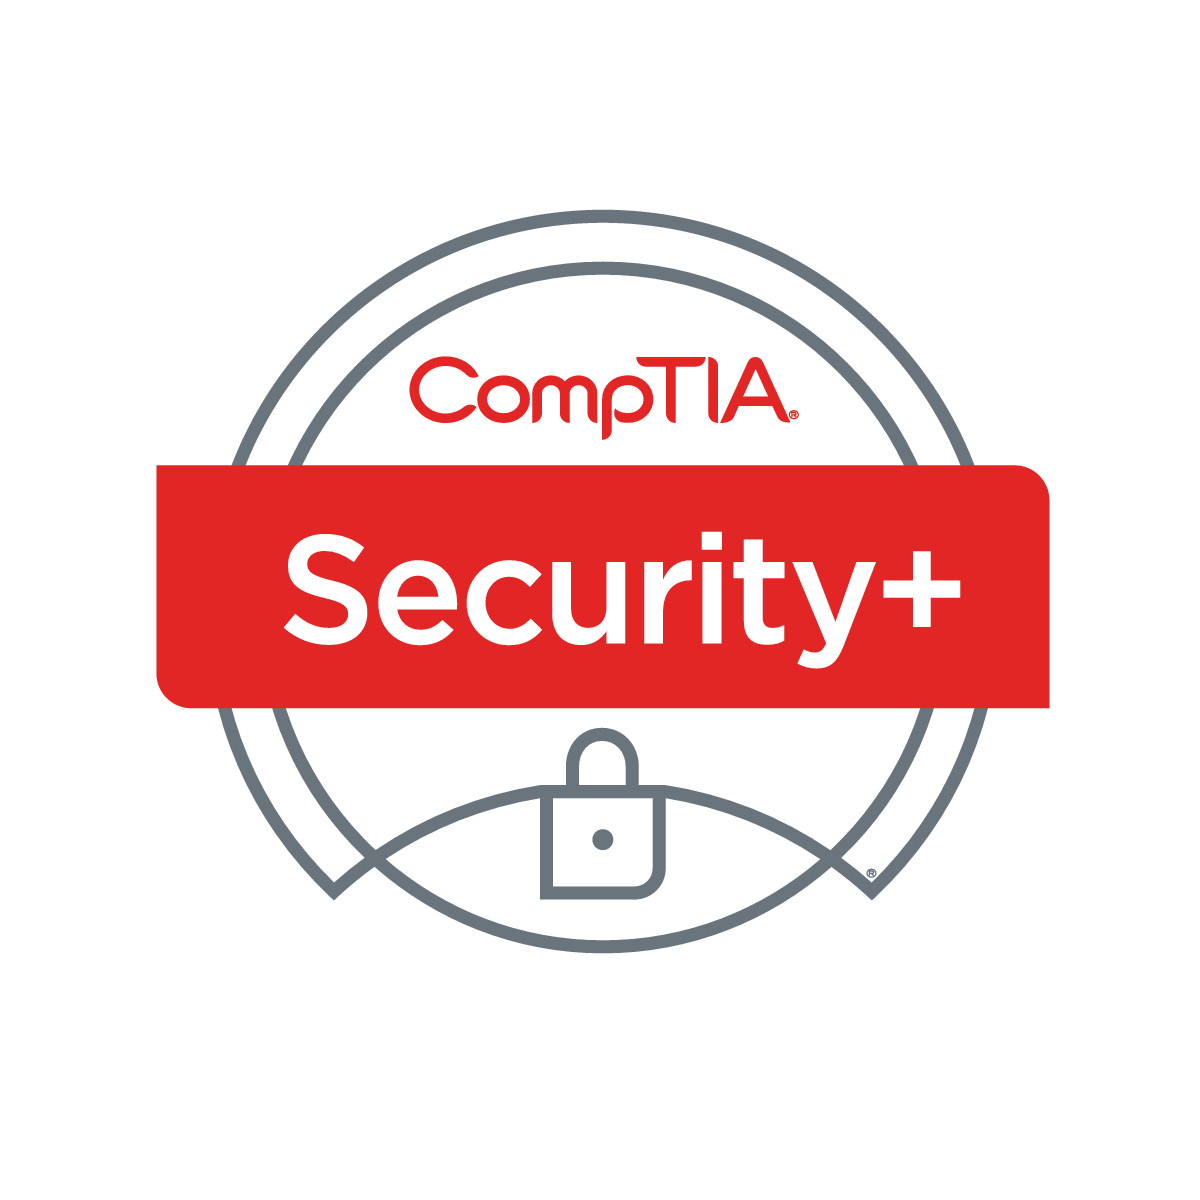 CompTIA Security+ (SY0-501) – 2020